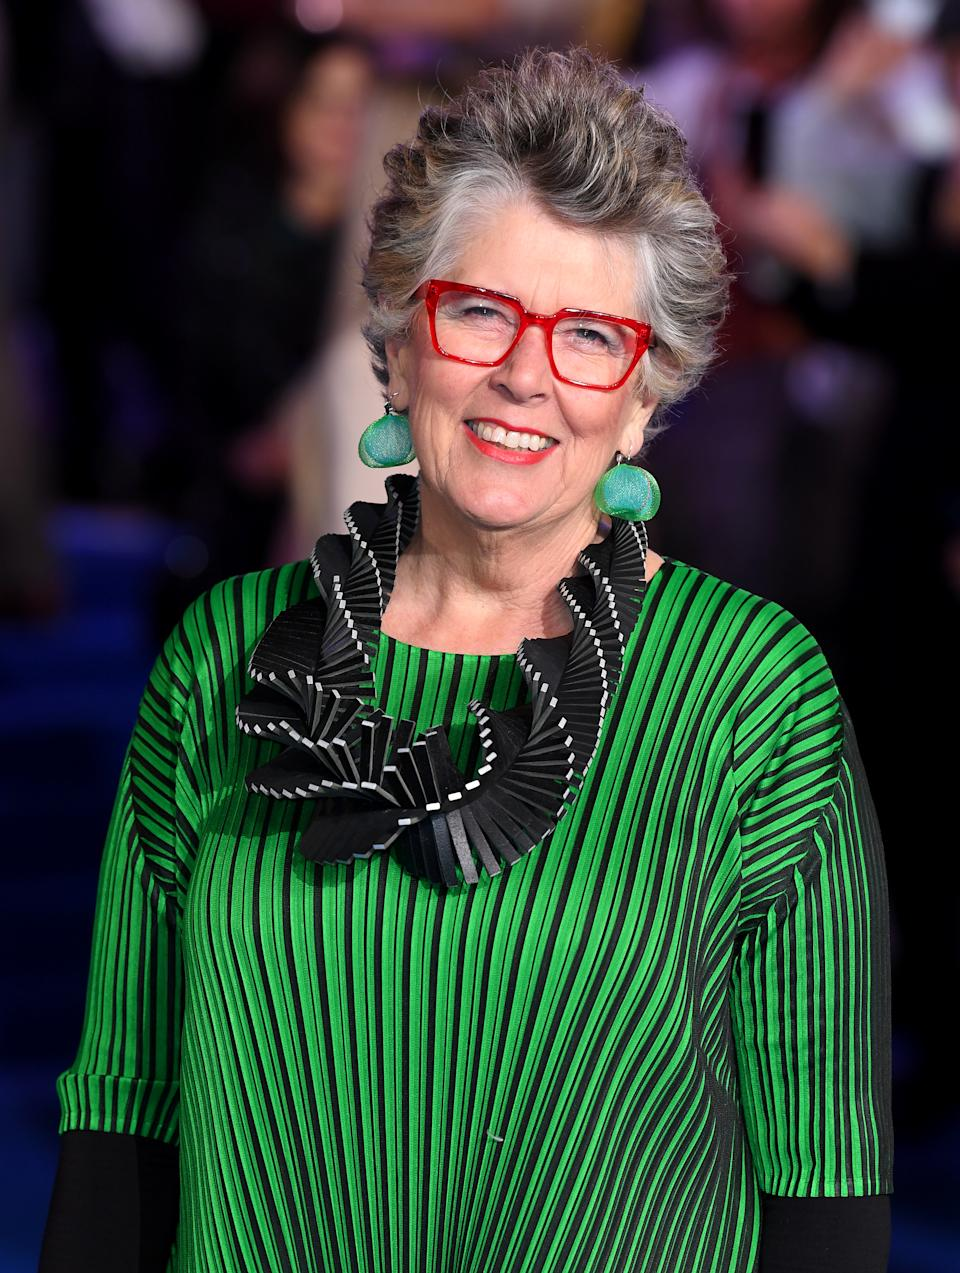 Prue Leith attending the Mary Poppins Returns European Premiere held at the Royal Albert Hall, London